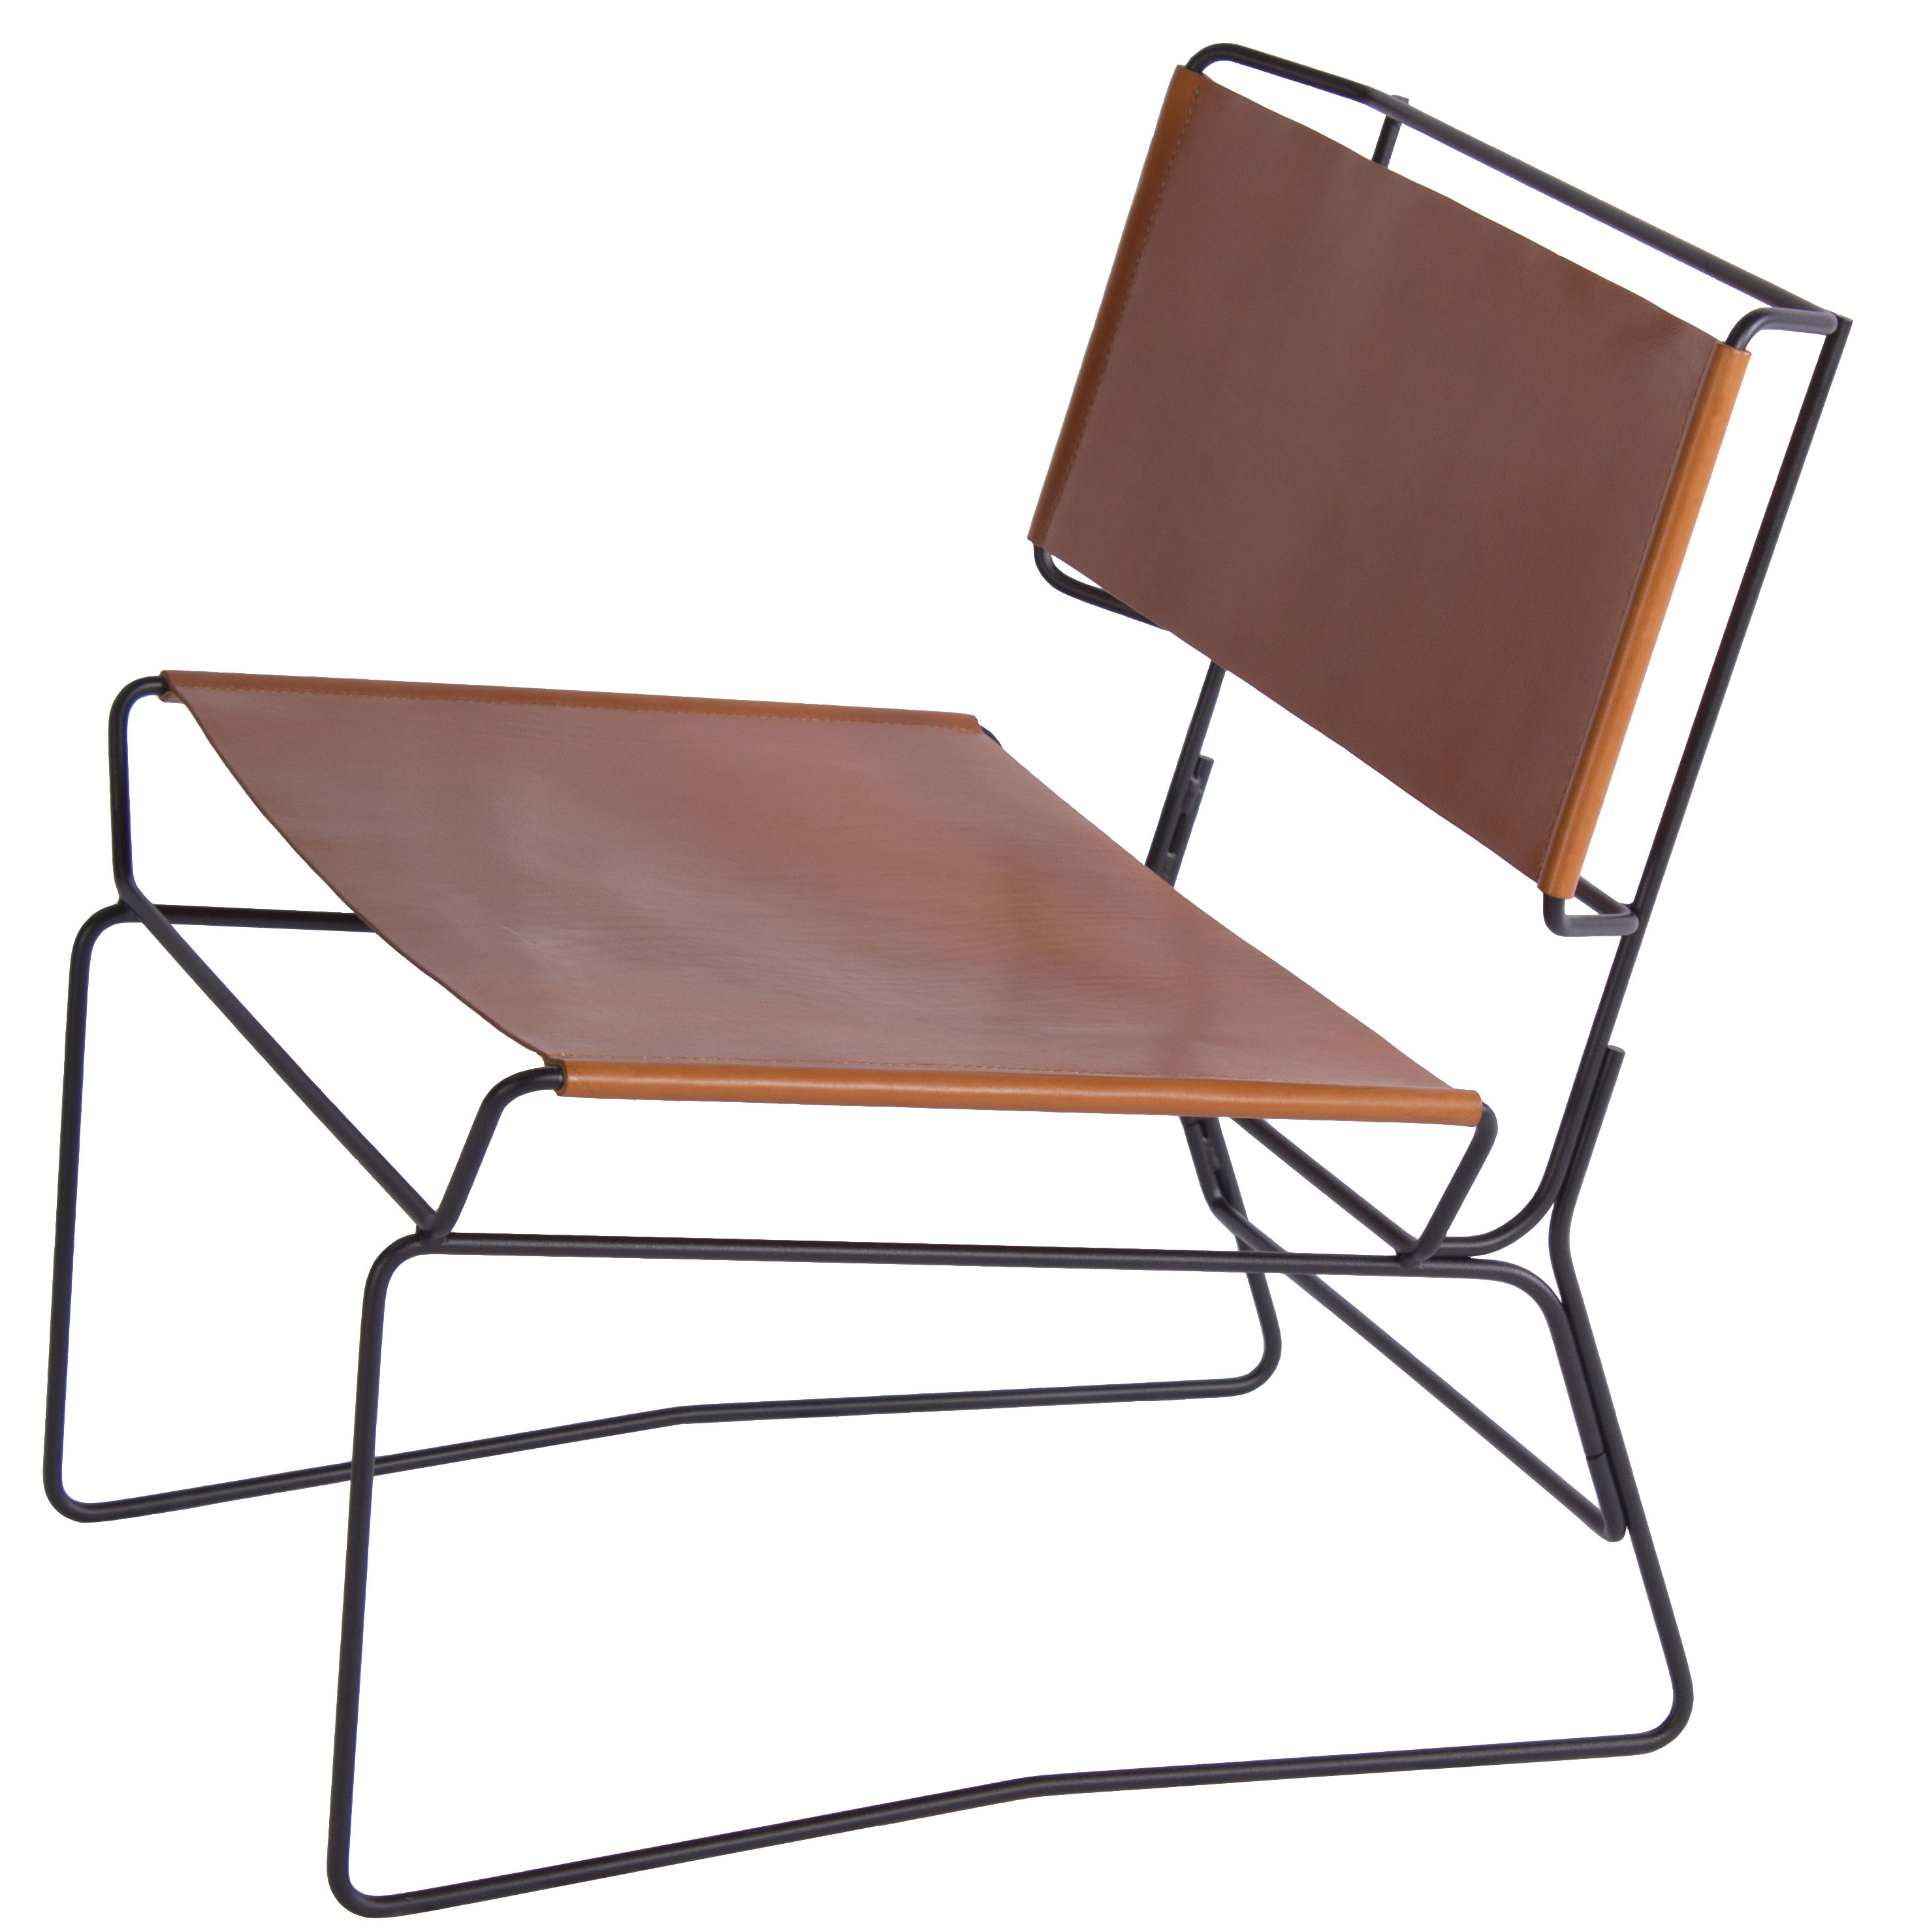 Furniture - Armchairs - Fil Low armchair by AA-New Design - Natural leather / Black structure - Epoxy lacquered steel, Leather